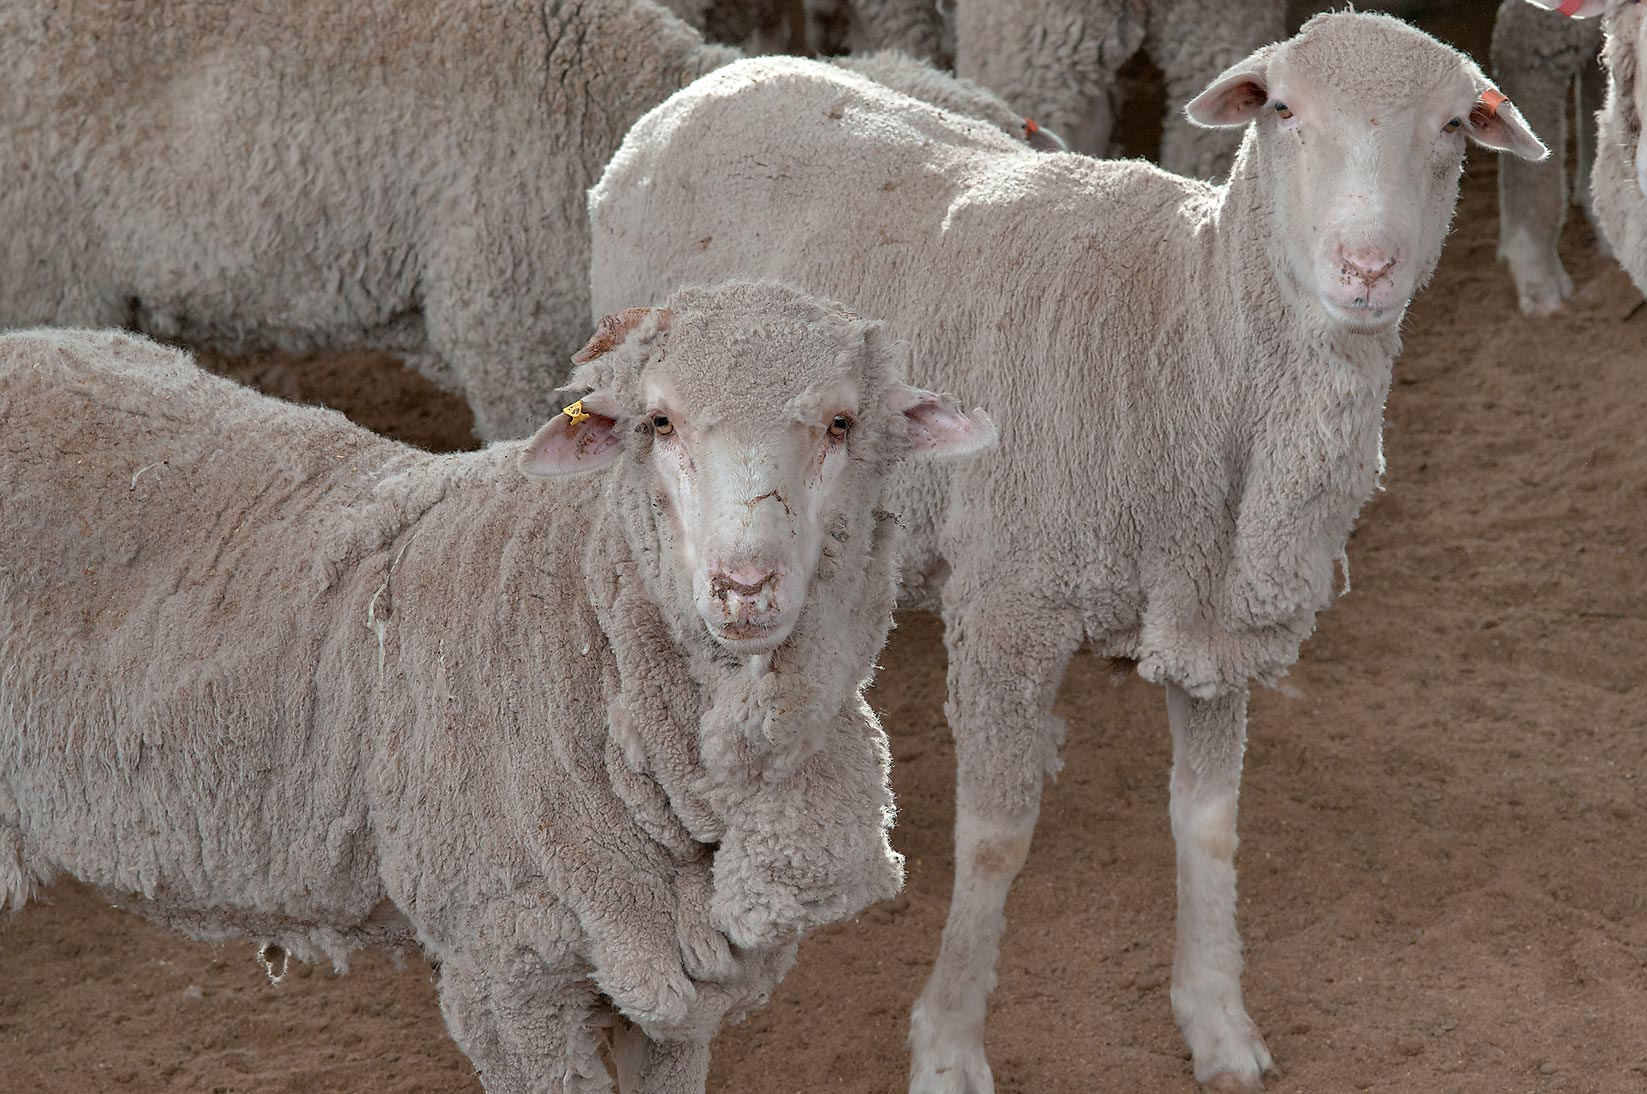 Lumpy wool of Australian sheep in a feedlot of...Mawashi Slaughterhouse. Doha, Qatar